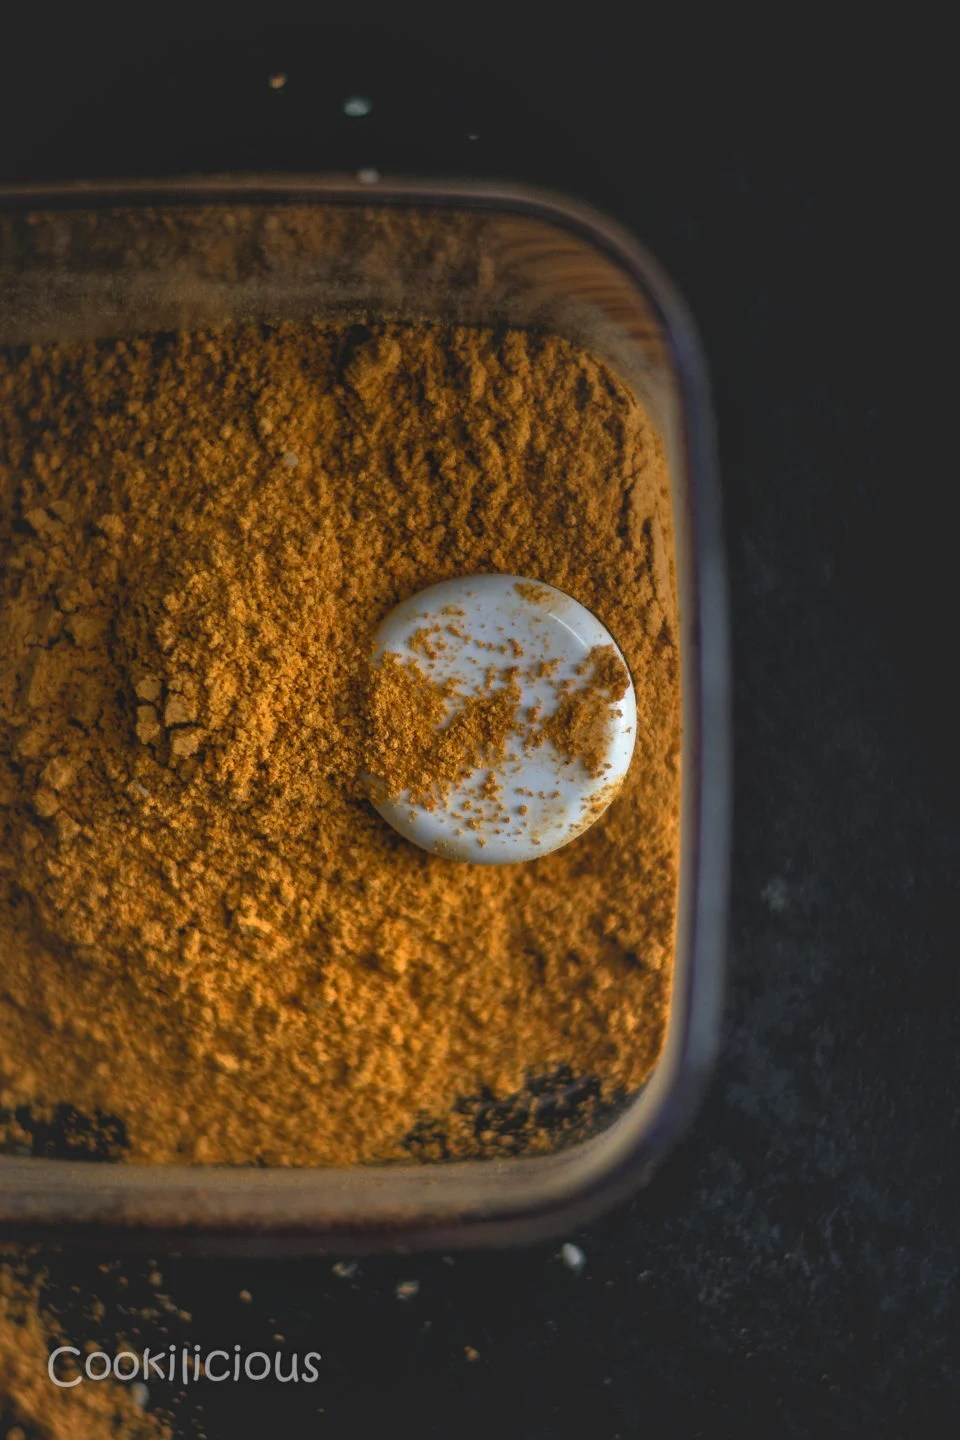 top angle shot of a spice box filled with Molagapudi and a scoop